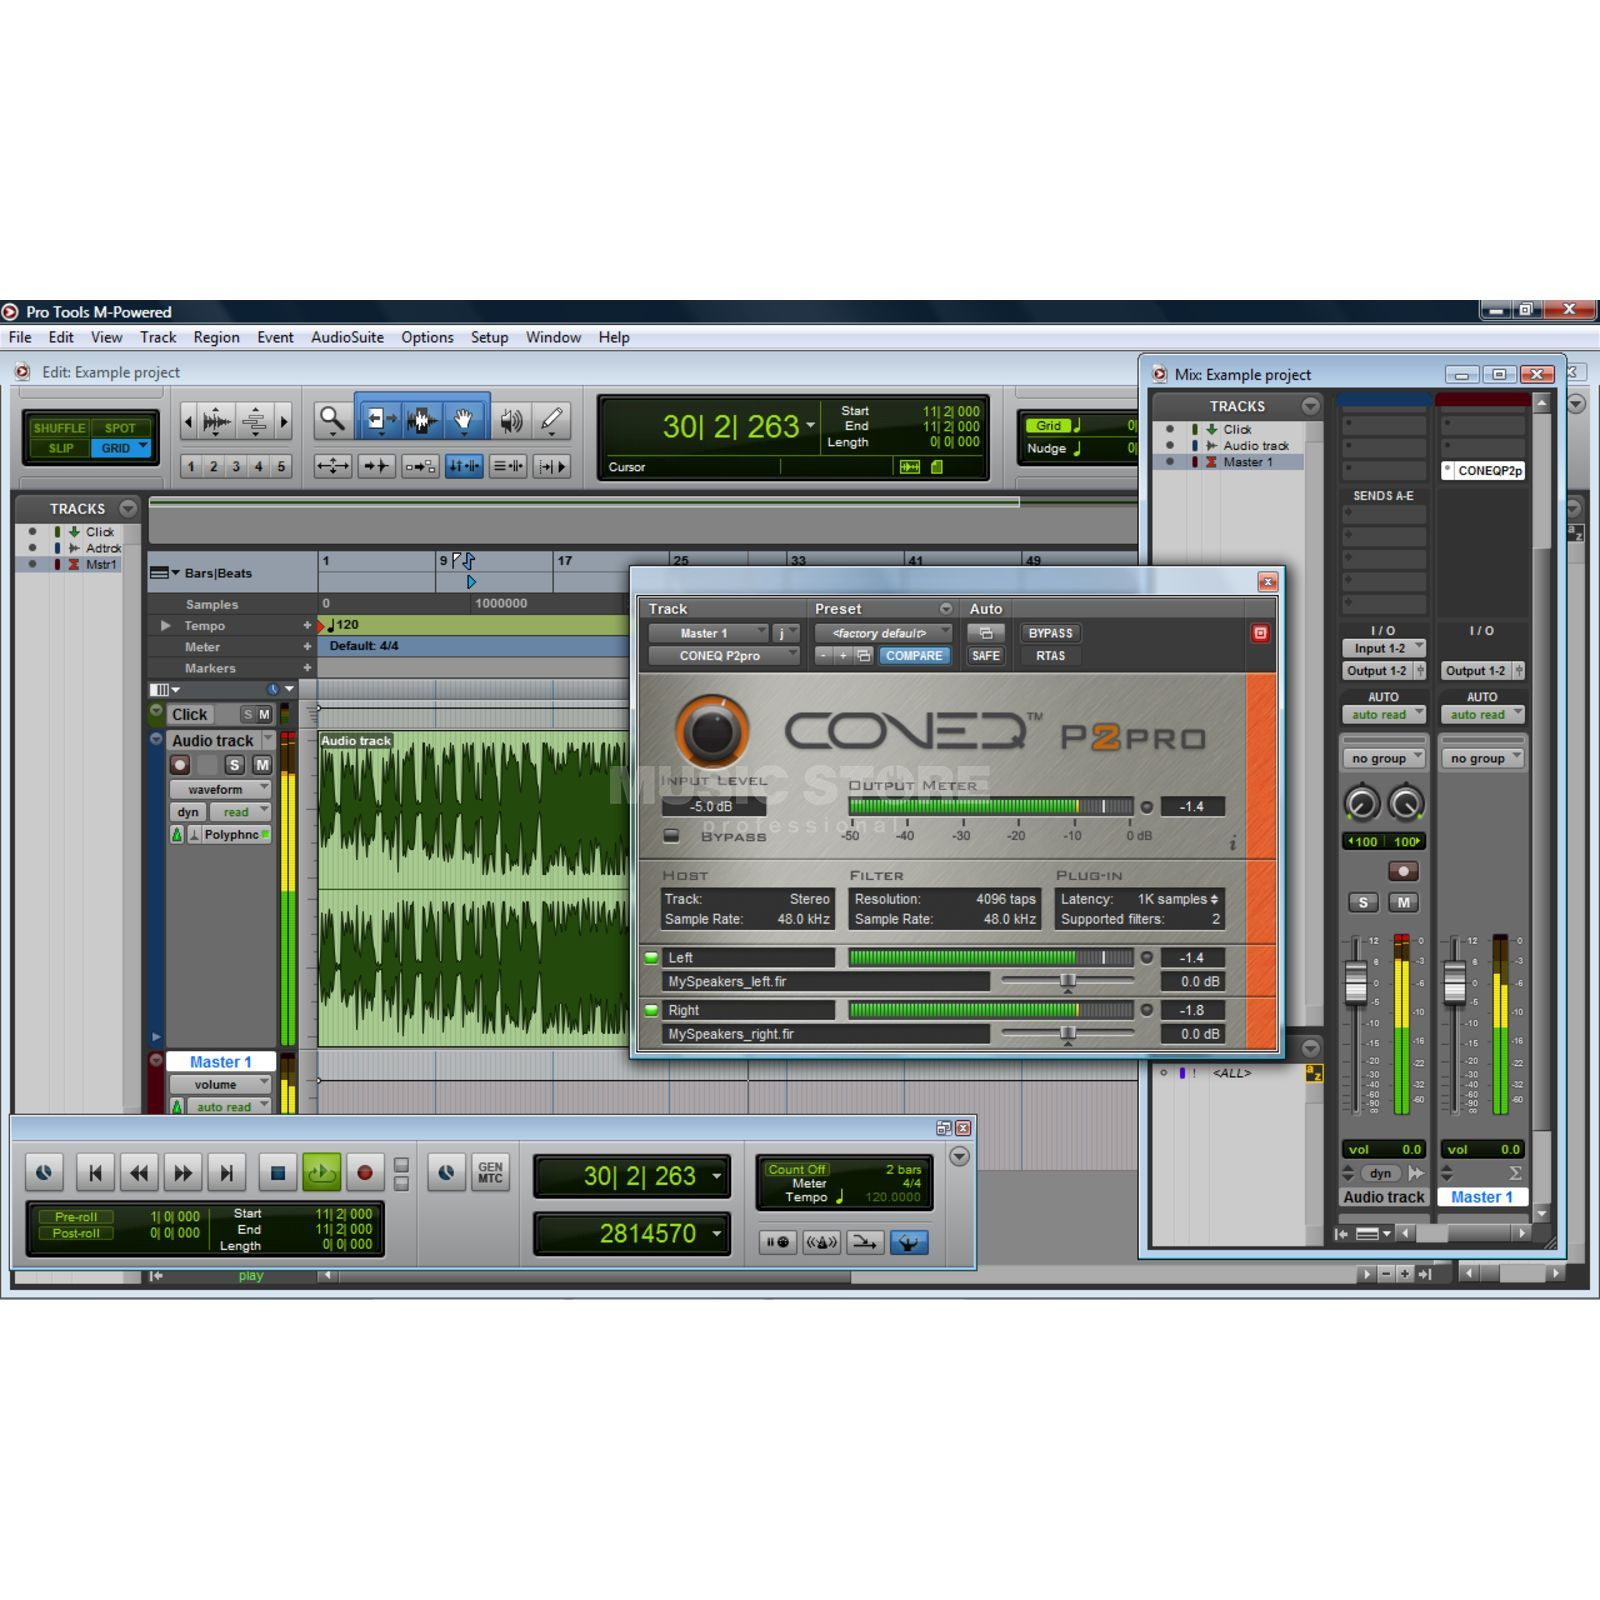 Real Sound Lab Coneq P2pro Softwareequalizer RTAS+VST, 4096 TAPS/Filter,2ch Produktbild